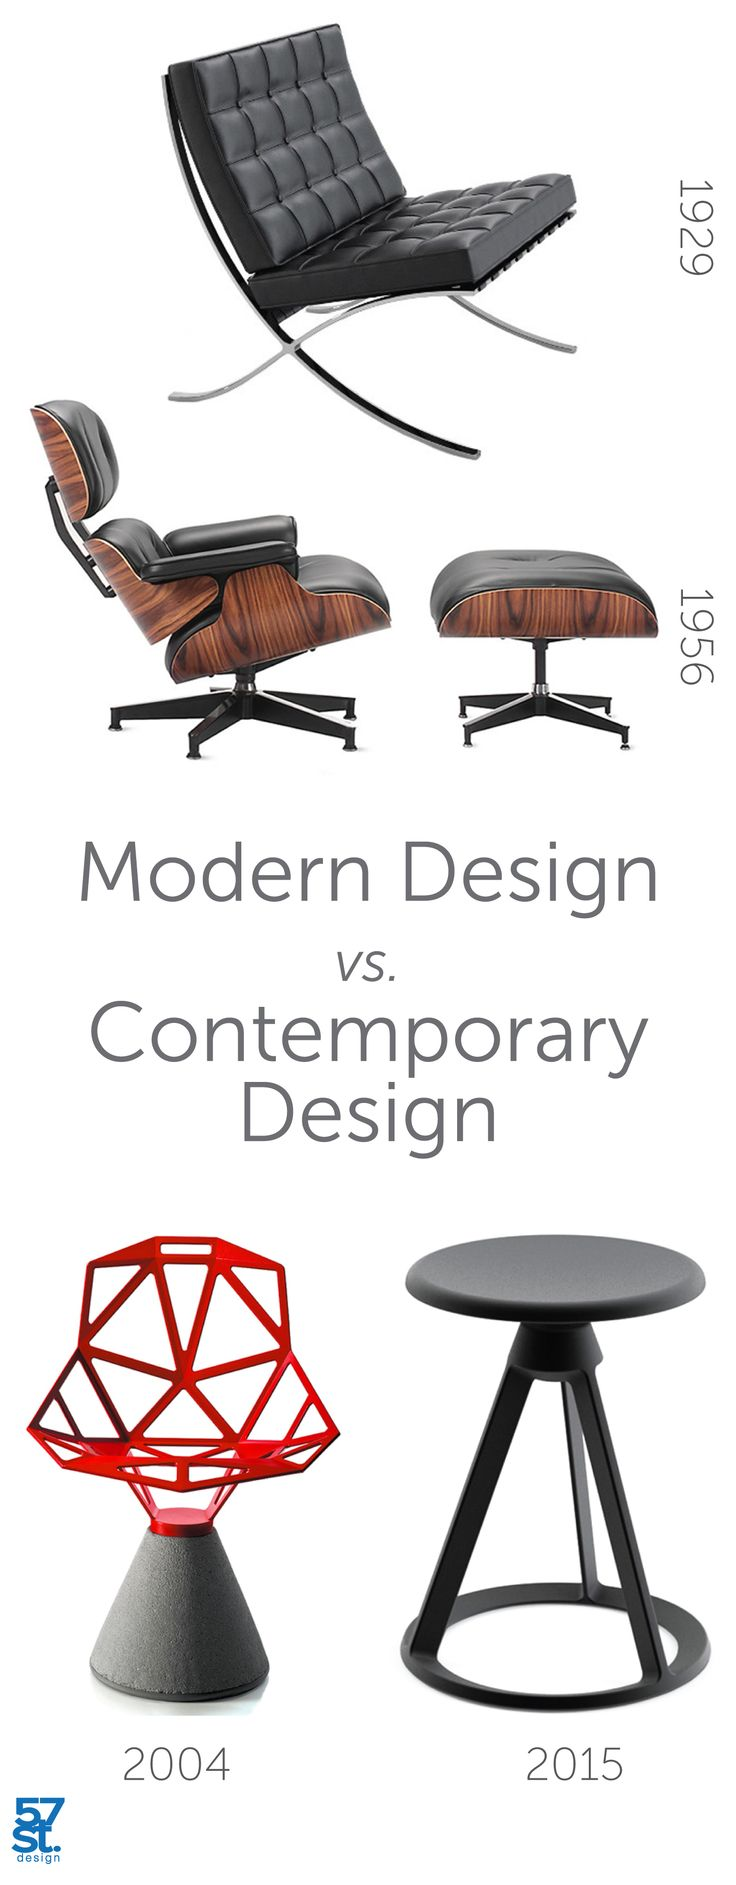 225 best images about home decor on pinterest blue and for Difference between modern and contemporary